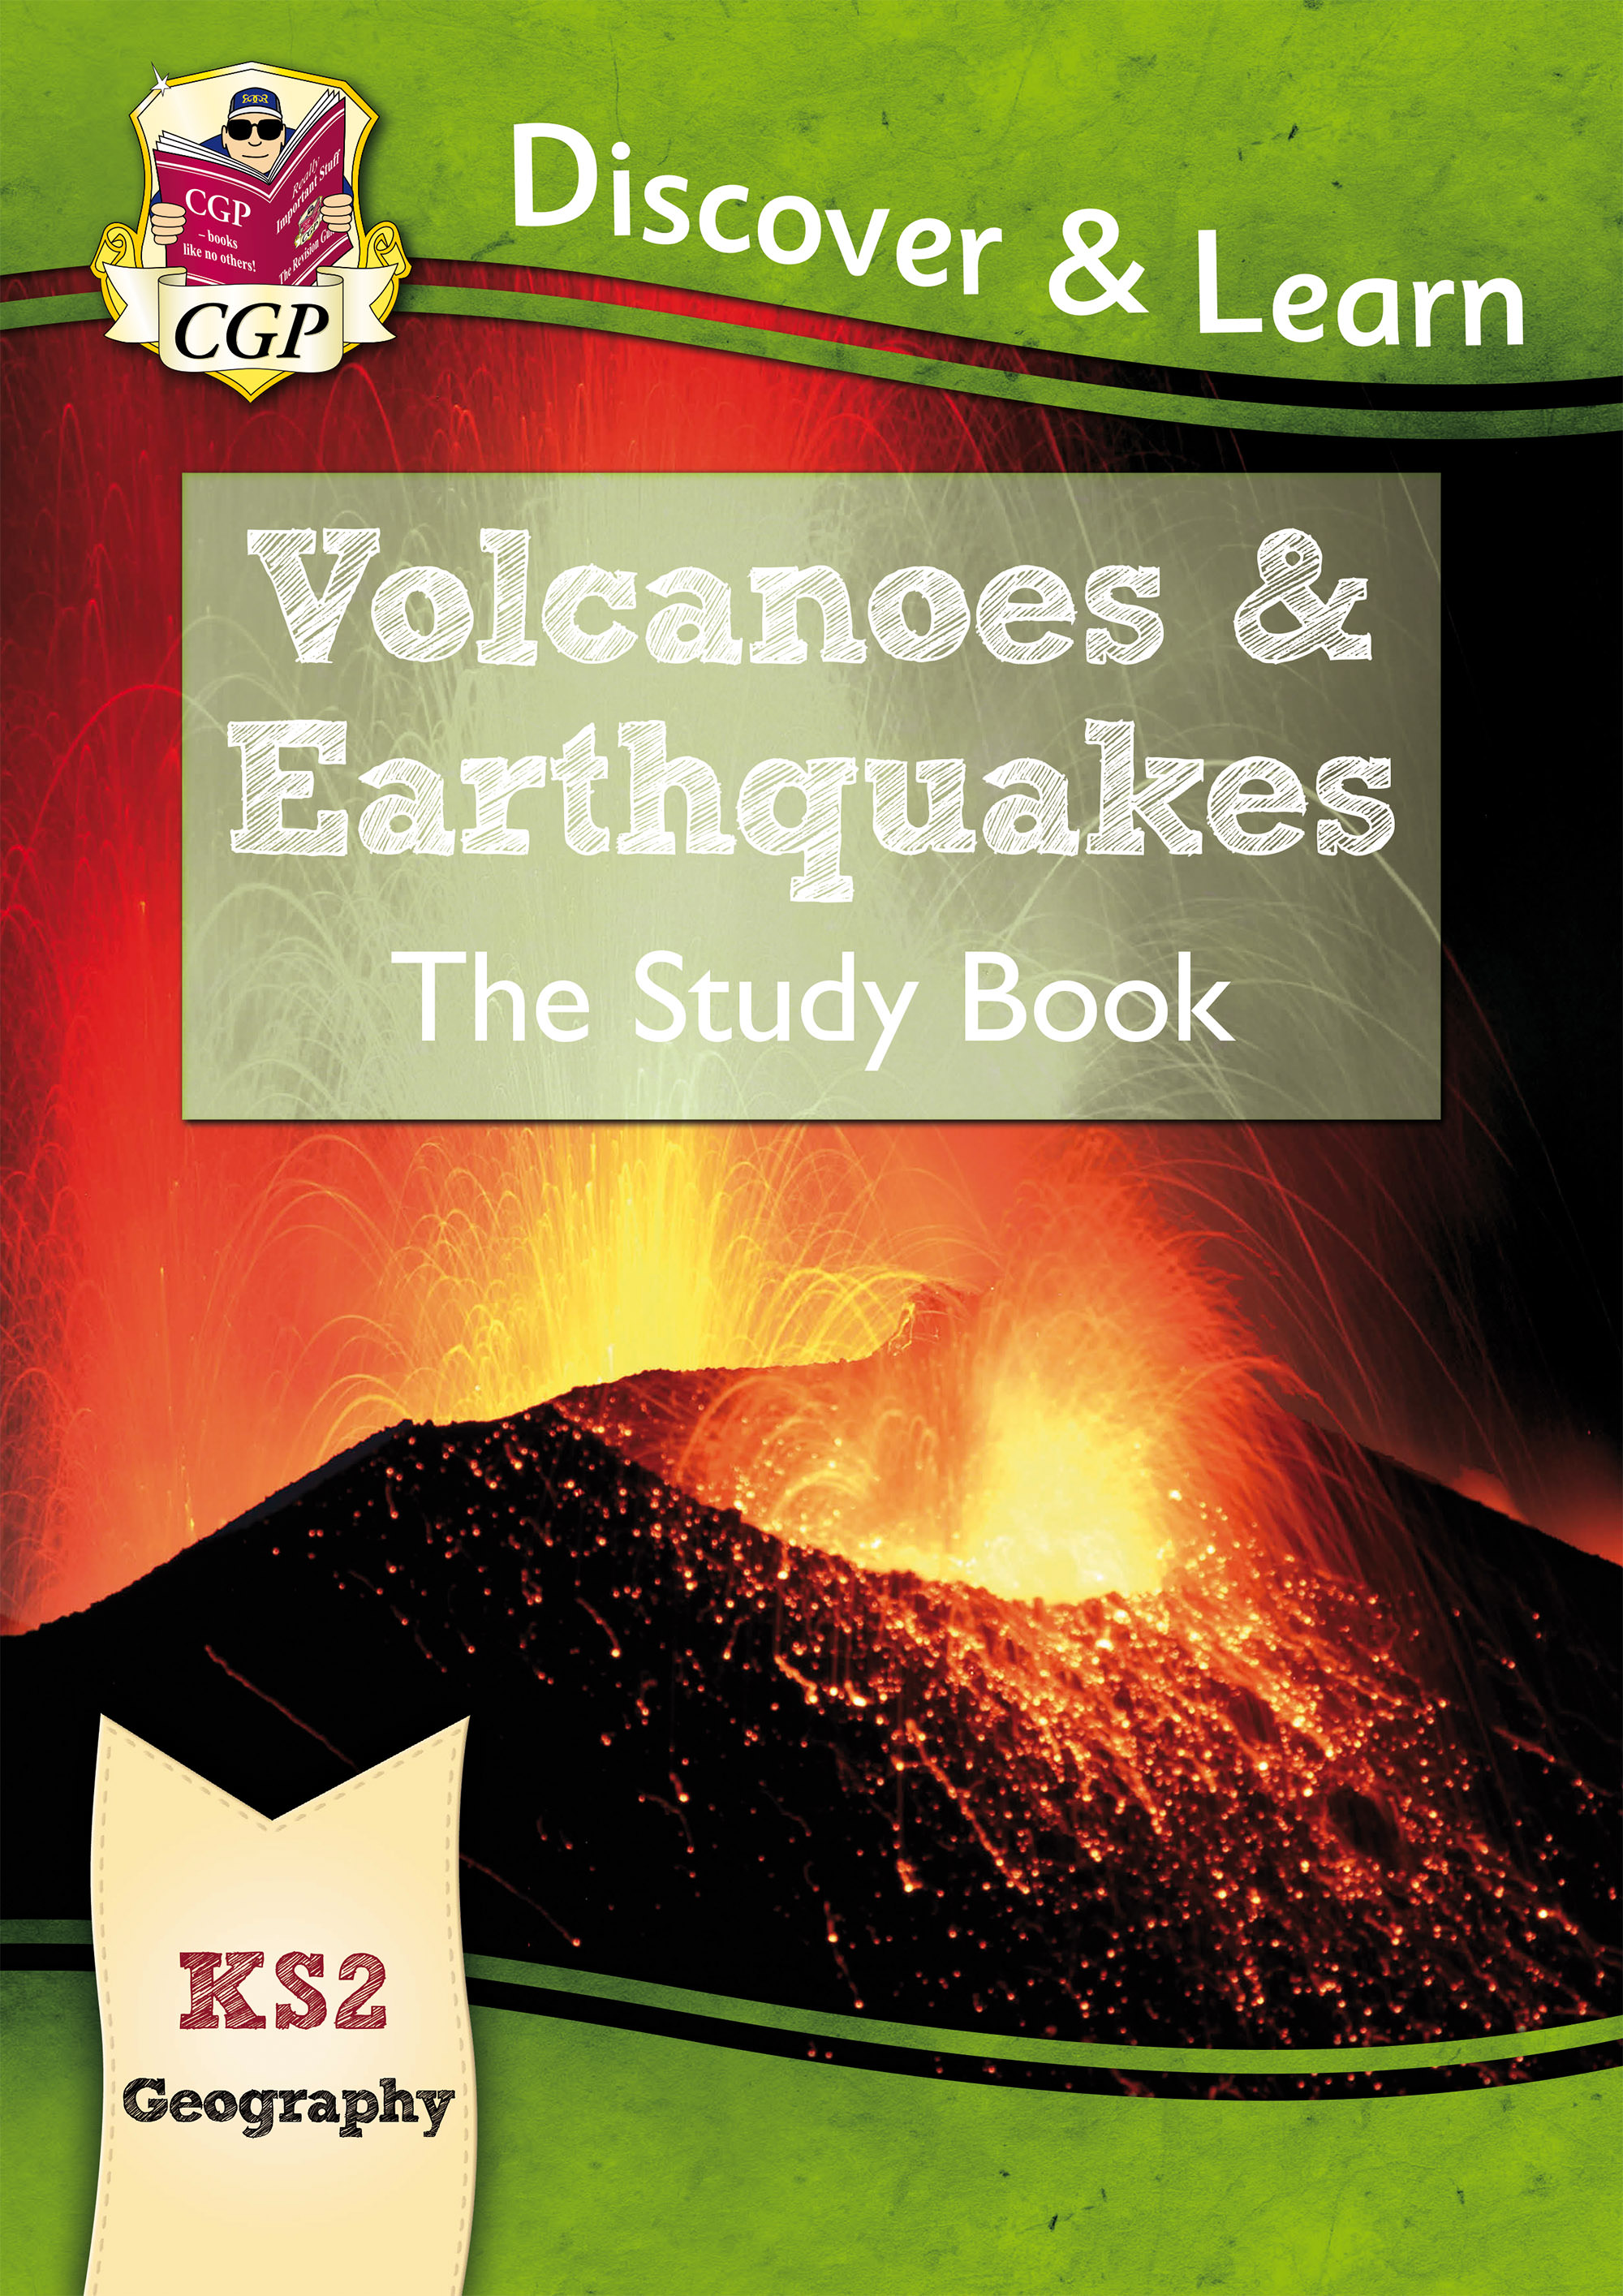 GVR21DK - New KS2 Discover & Learn: Geography - Volcanoes and Earthquakes Study Book